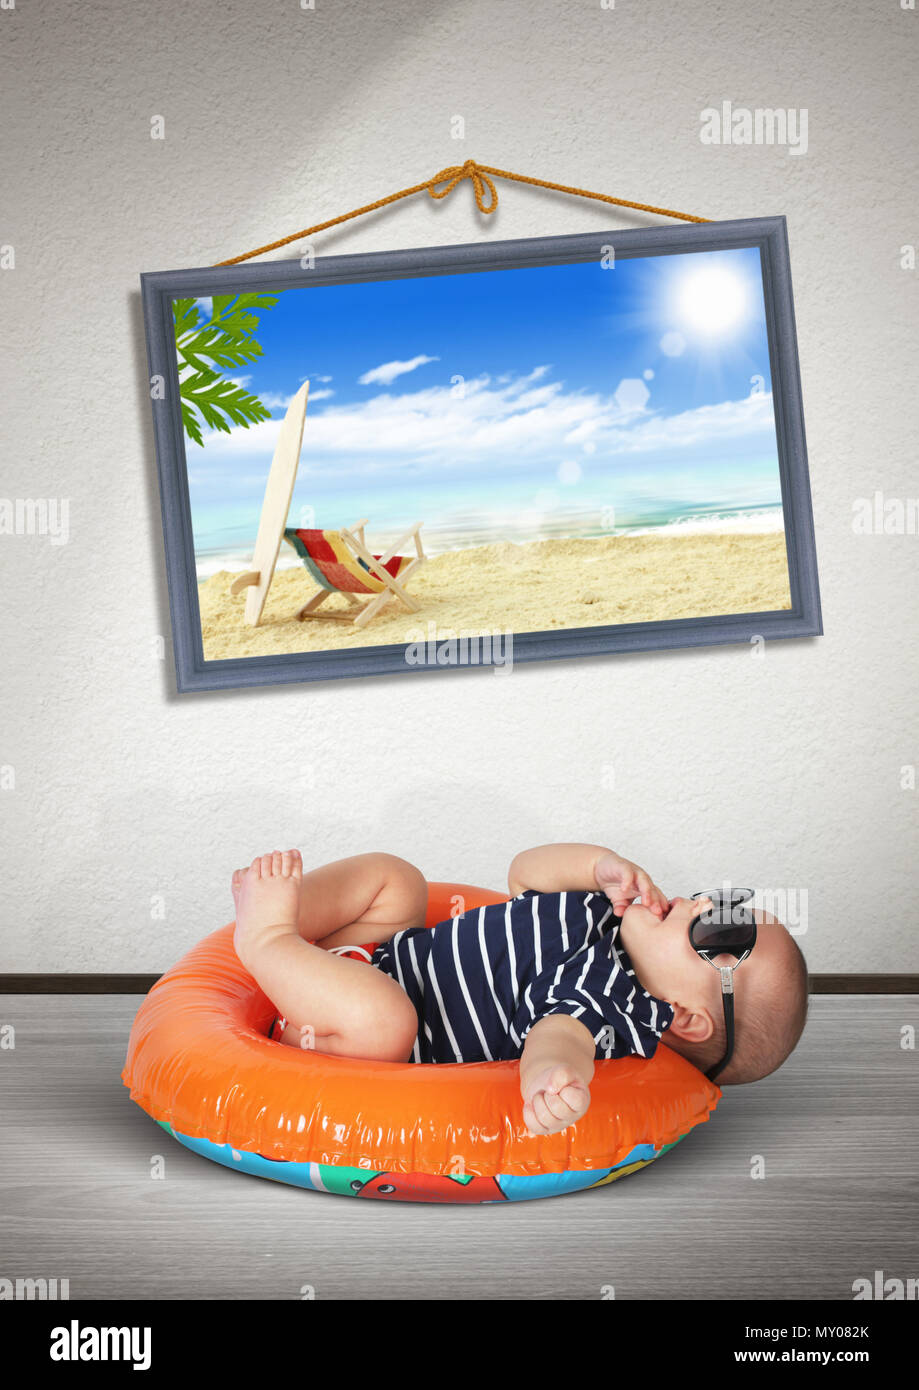 Funny Baby On Swimming Circle At Home As On The Beach Vacation Concept Stock Photo Alamy